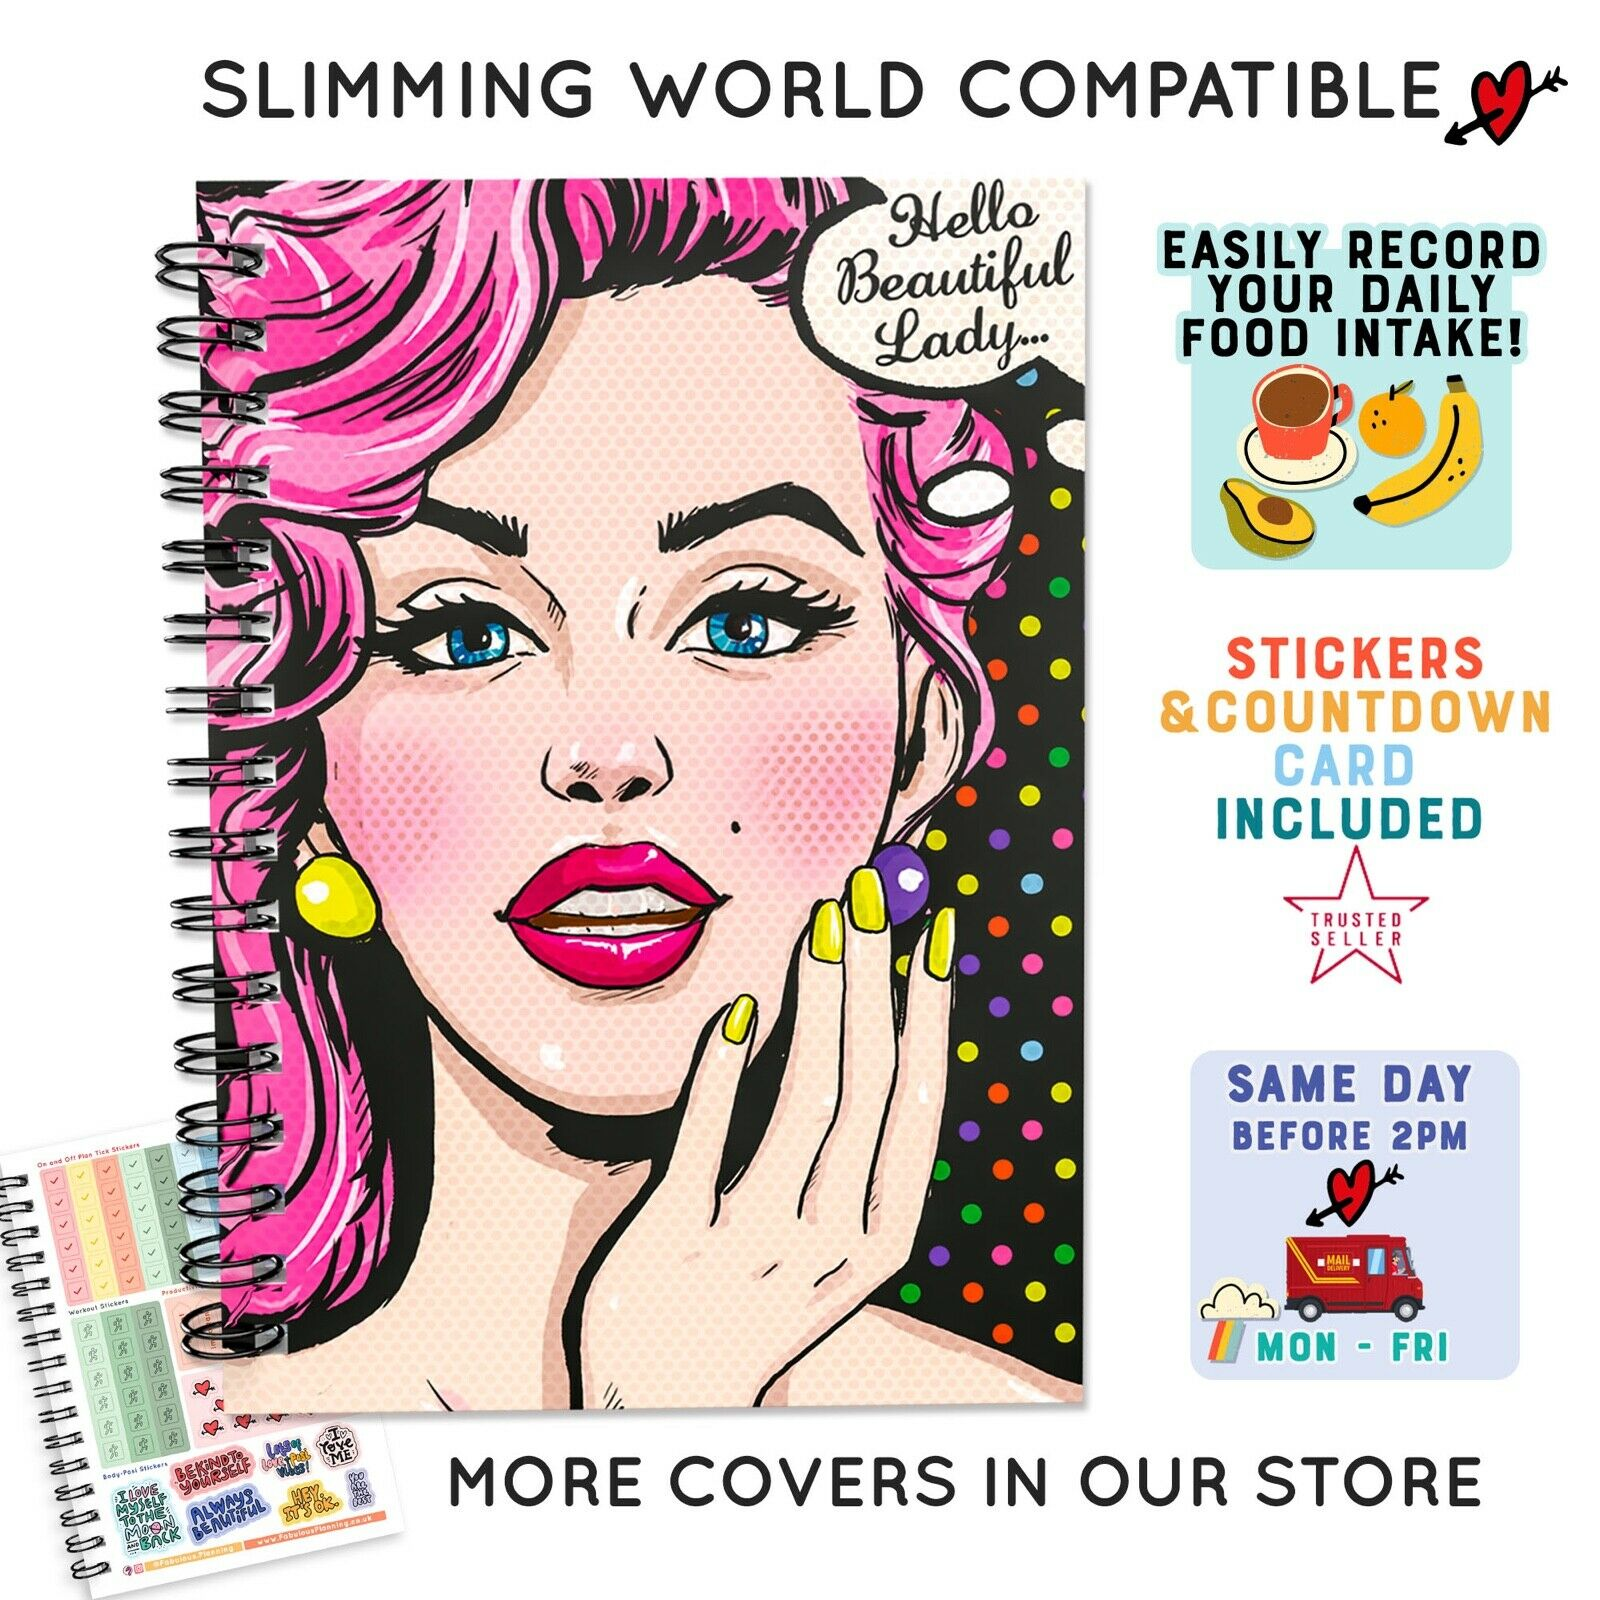 Food Diary Diet Slimming World Compatible Tracker